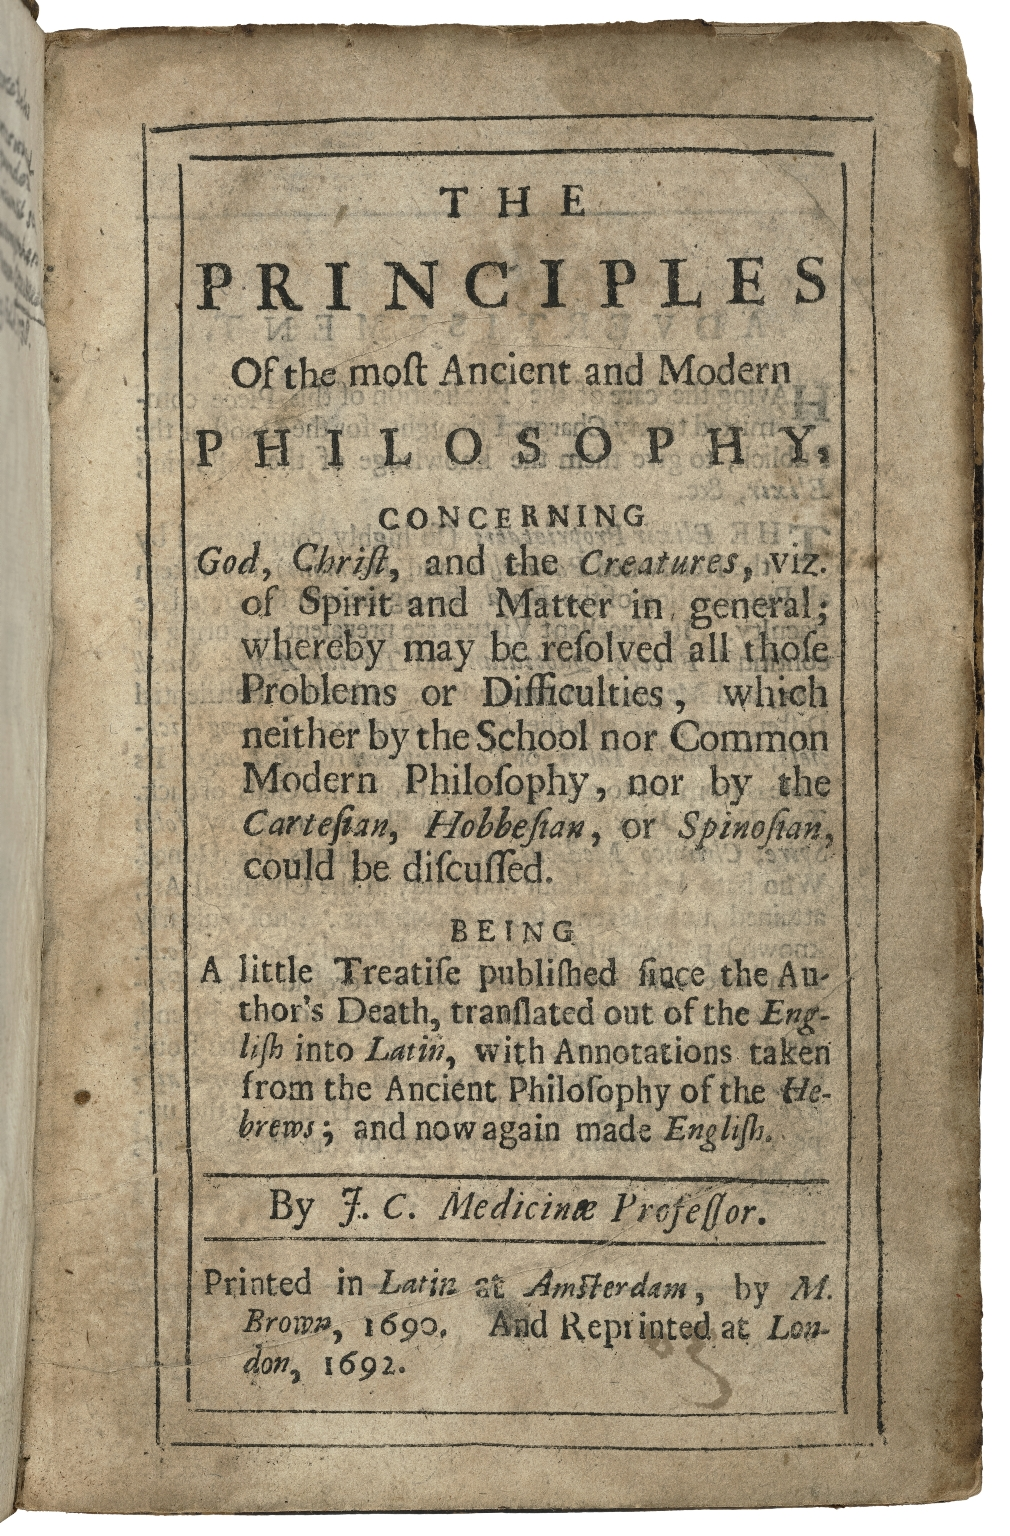 The principles of the most ancient and modern philosophy concerning God, Christ and the creatures ... : being a little treatise published since the author's death, translated out of the English into Latin, with annotations taken from the ancient philosophy of the Hebrews, and now again made English / by J.C., Medicinae Professor.